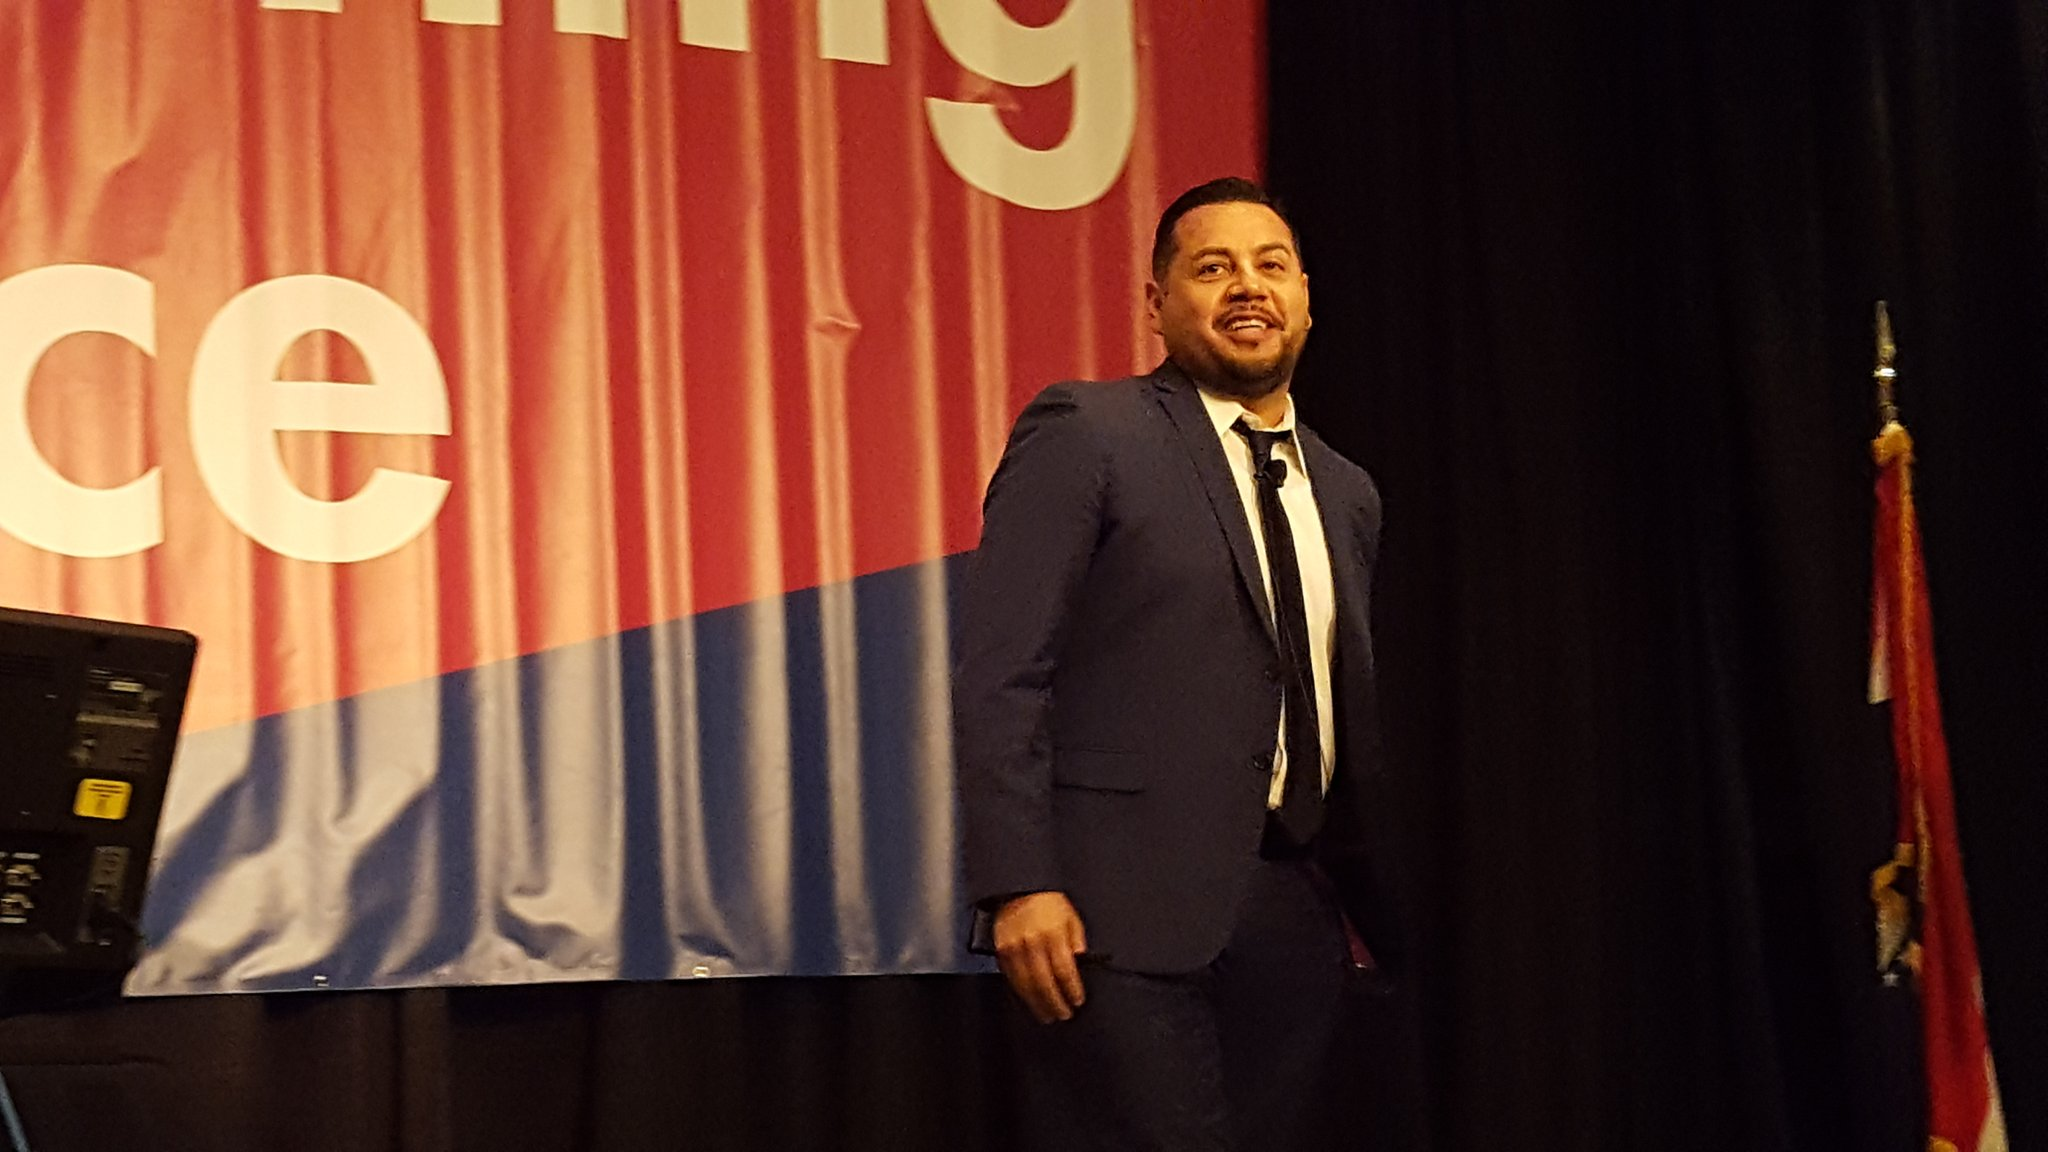 "Excited to hear from engaging educator @lcruzconsulting at #moplc17! ""TODAY IS A GOOD DAY!"" @EducPlus @StLouisRPDC @moplc https://t.co/RrUjbprp49"